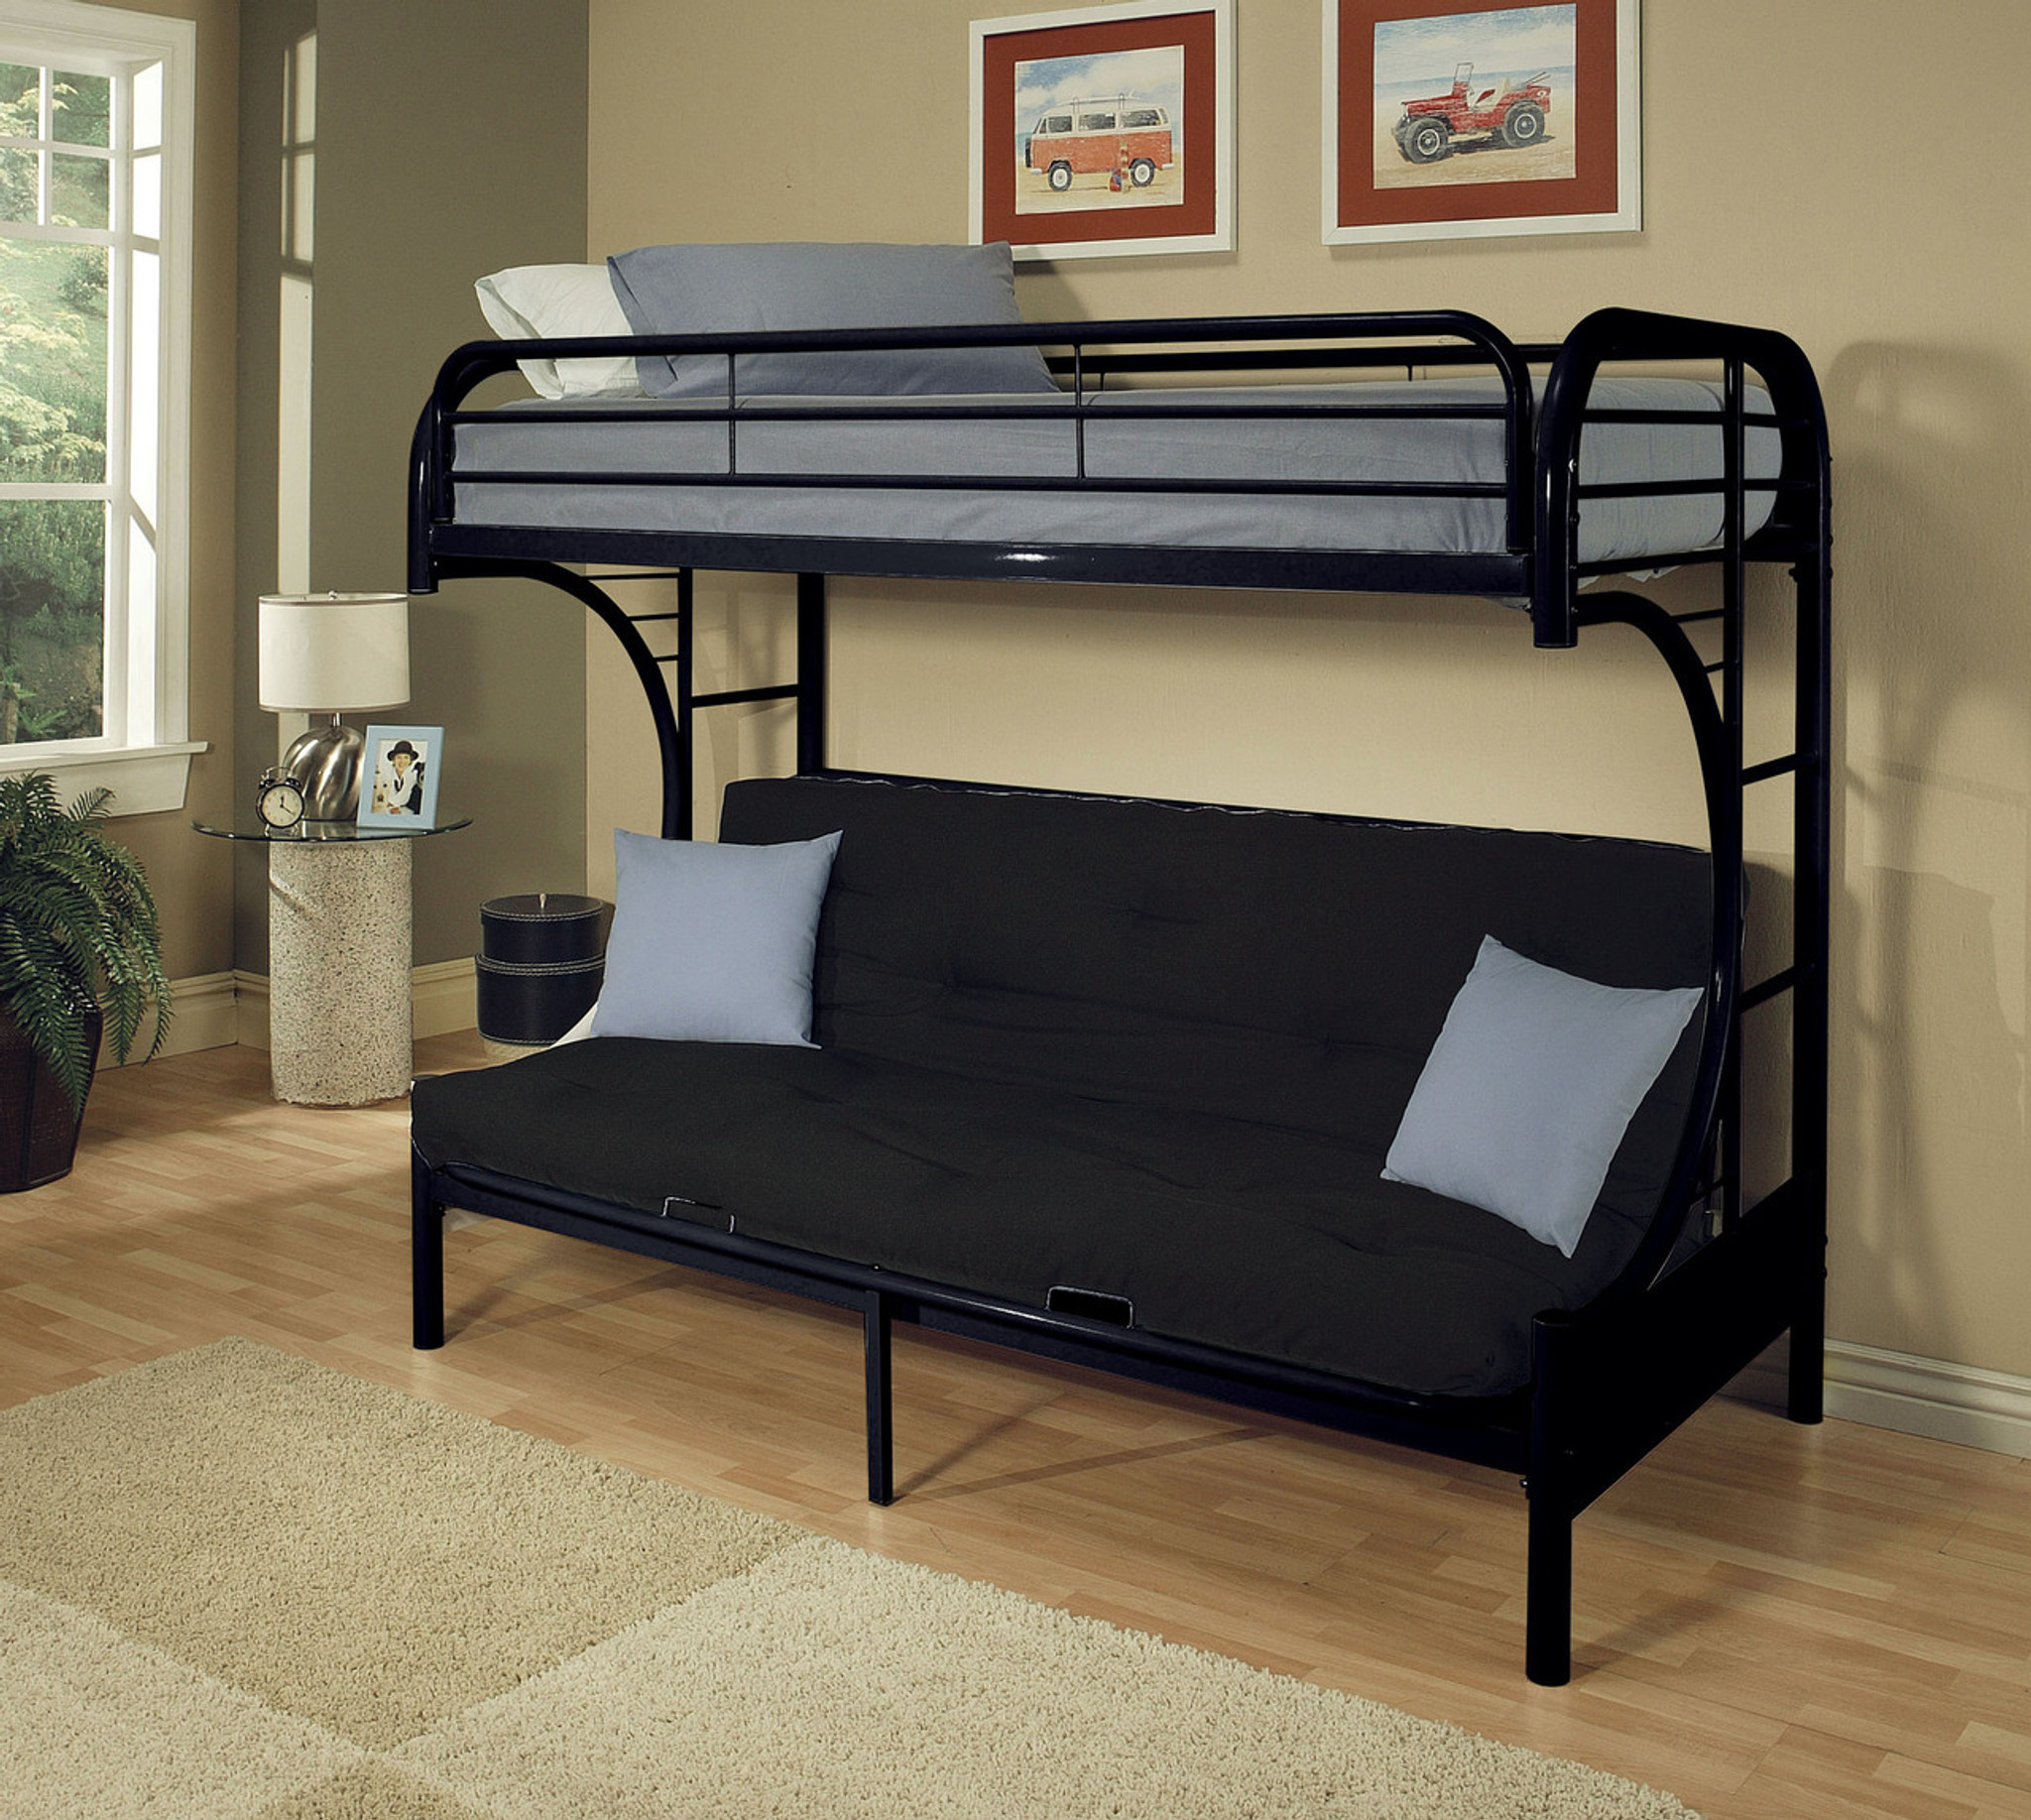 Black Futon Bunk Bed